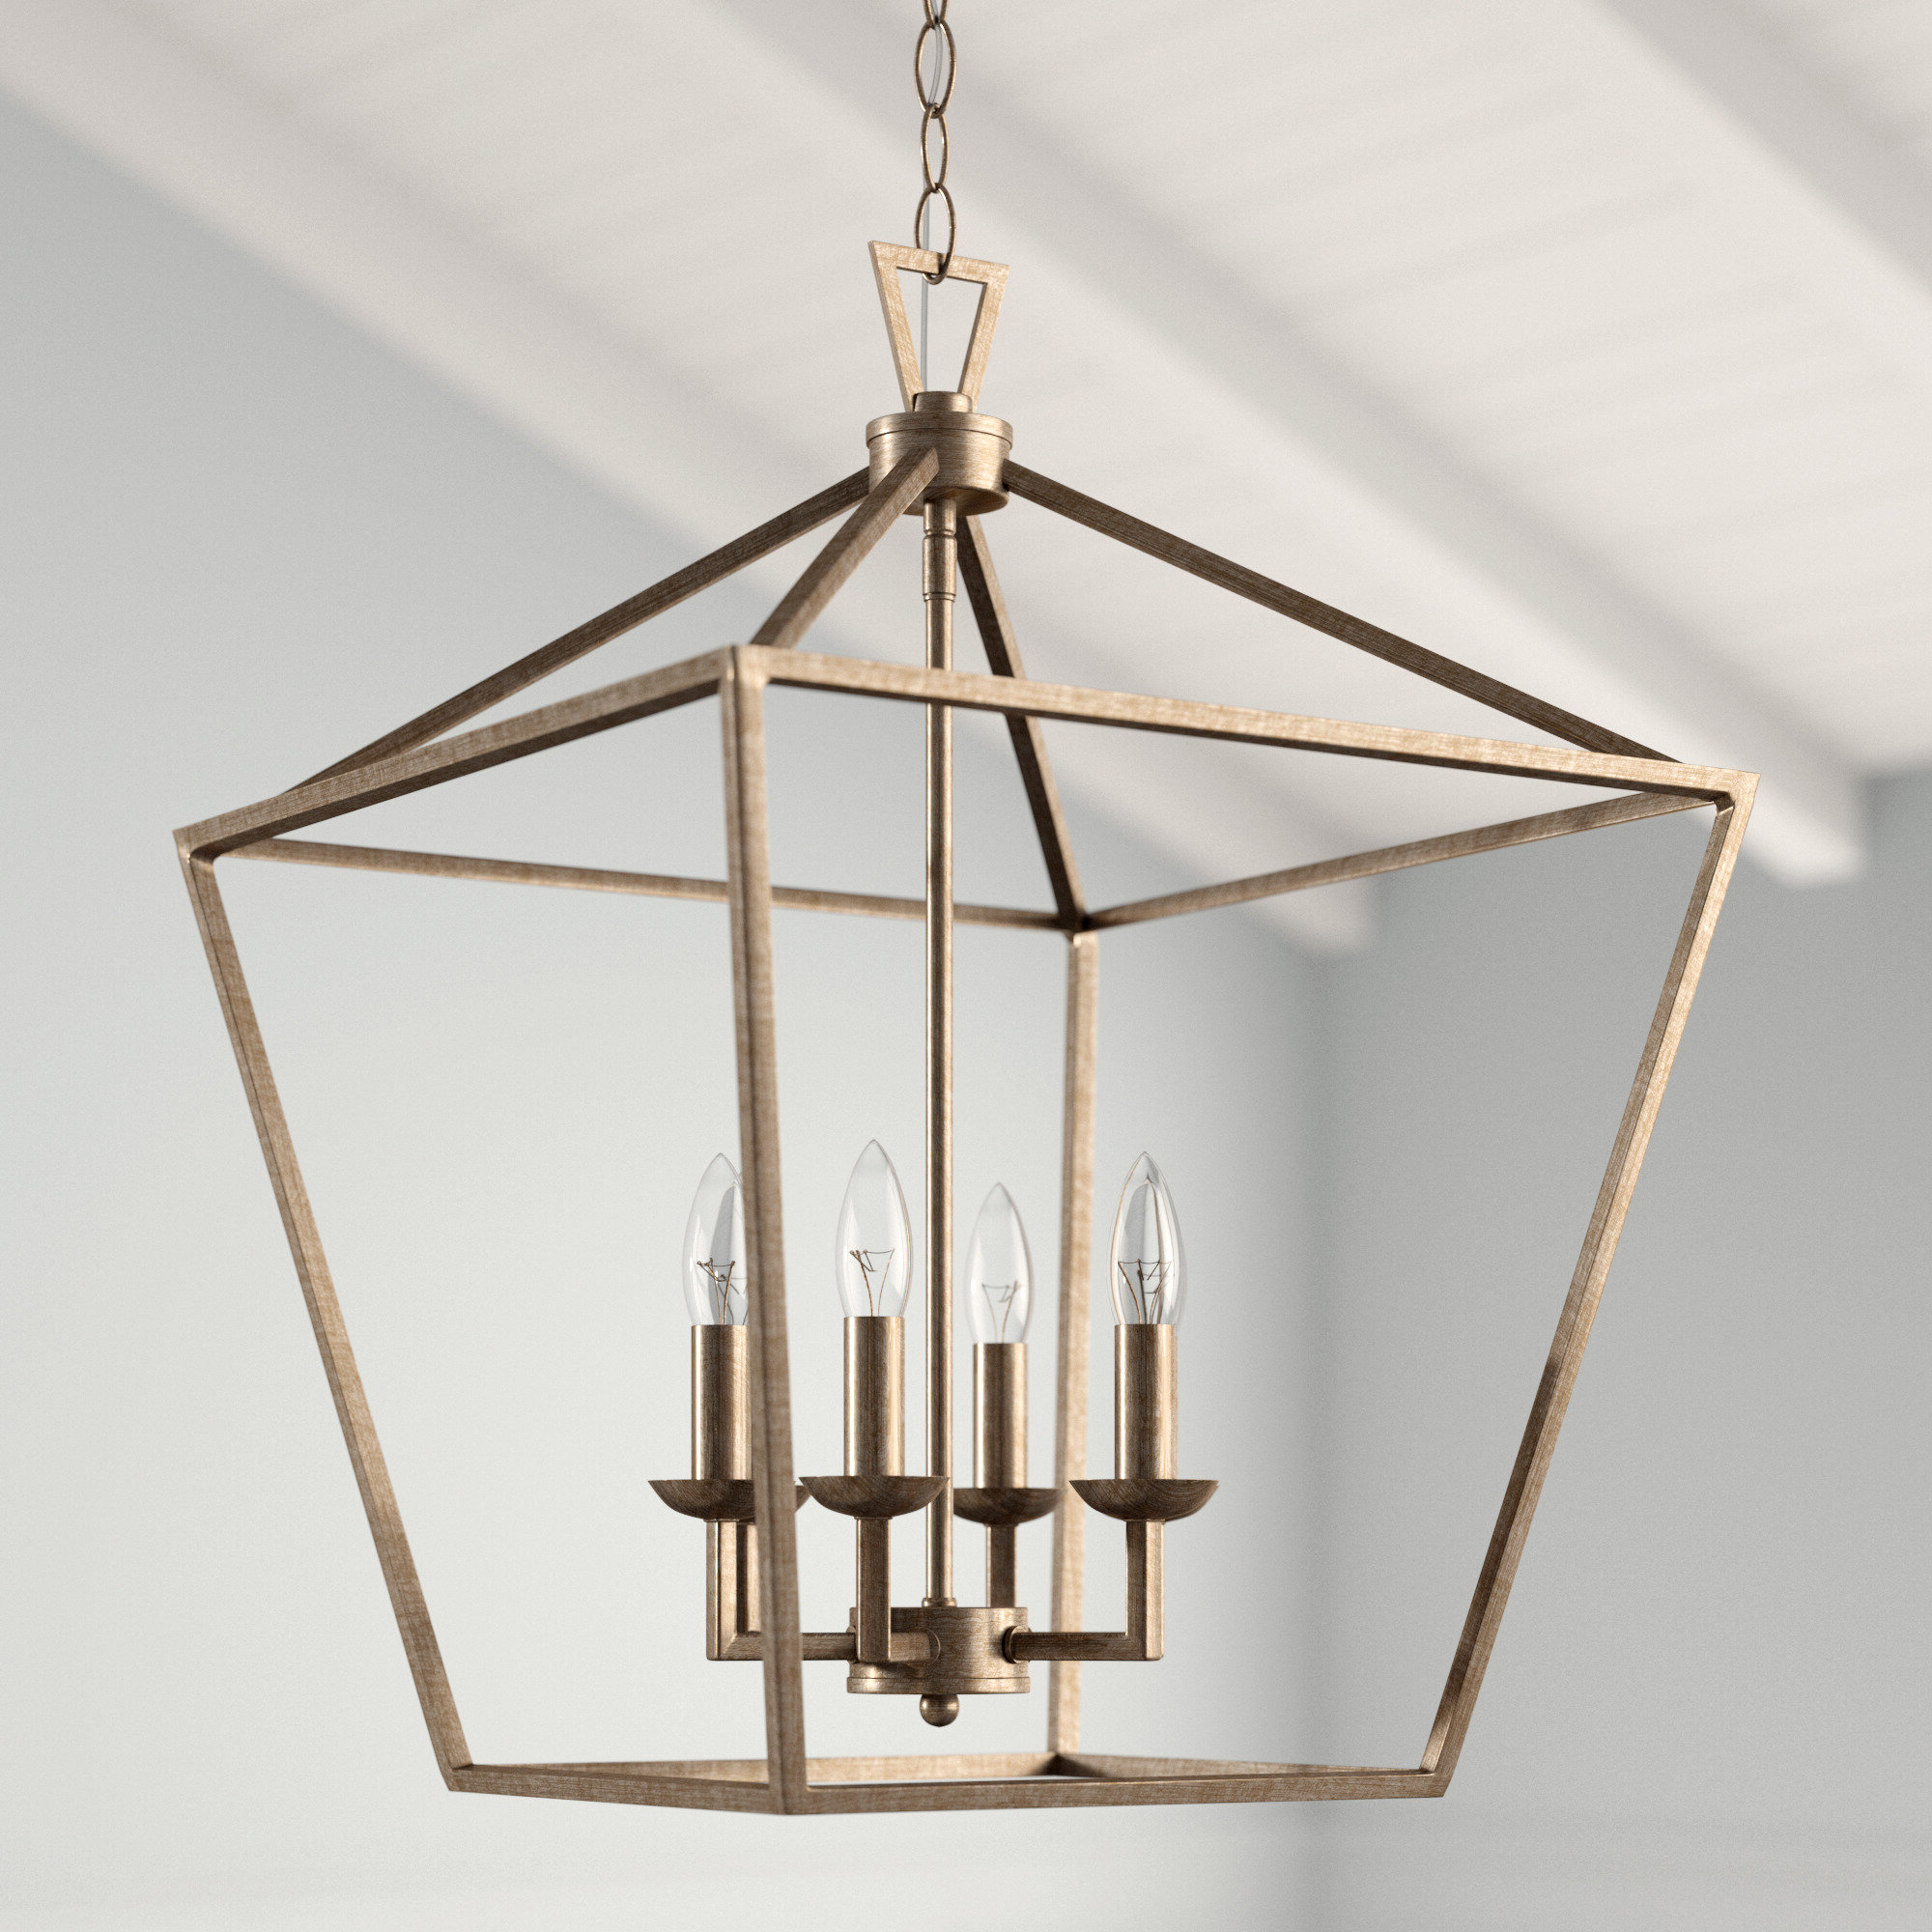 Most Recent Louanne 1 Light Lantern Geometric Pendants Regarding Carmen 6 Light Lantern Geometric Pendant (Gallery 13 of 20)